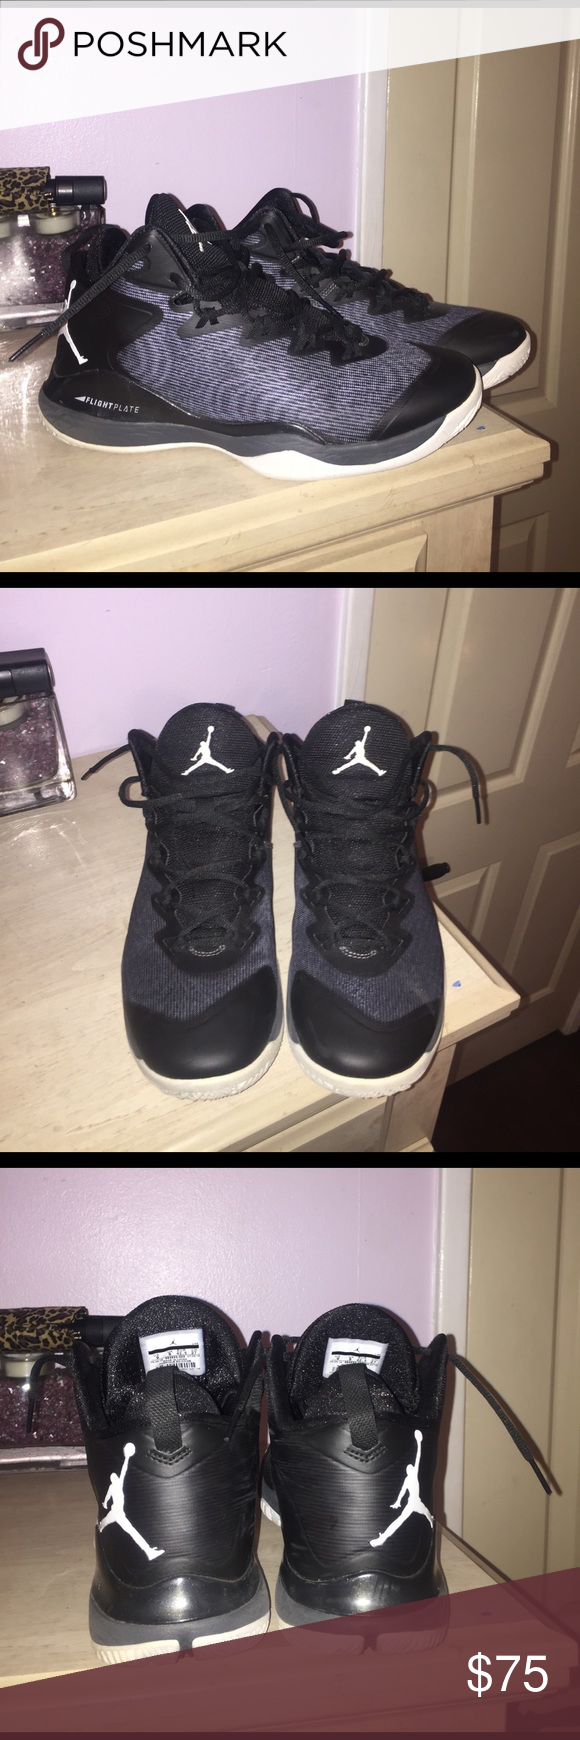 11ca17fc38c Air Jordan Flight Plate PERFECT CONDITION. Worn once or twice. Men s size  9. Jordan Shoes Sneakers